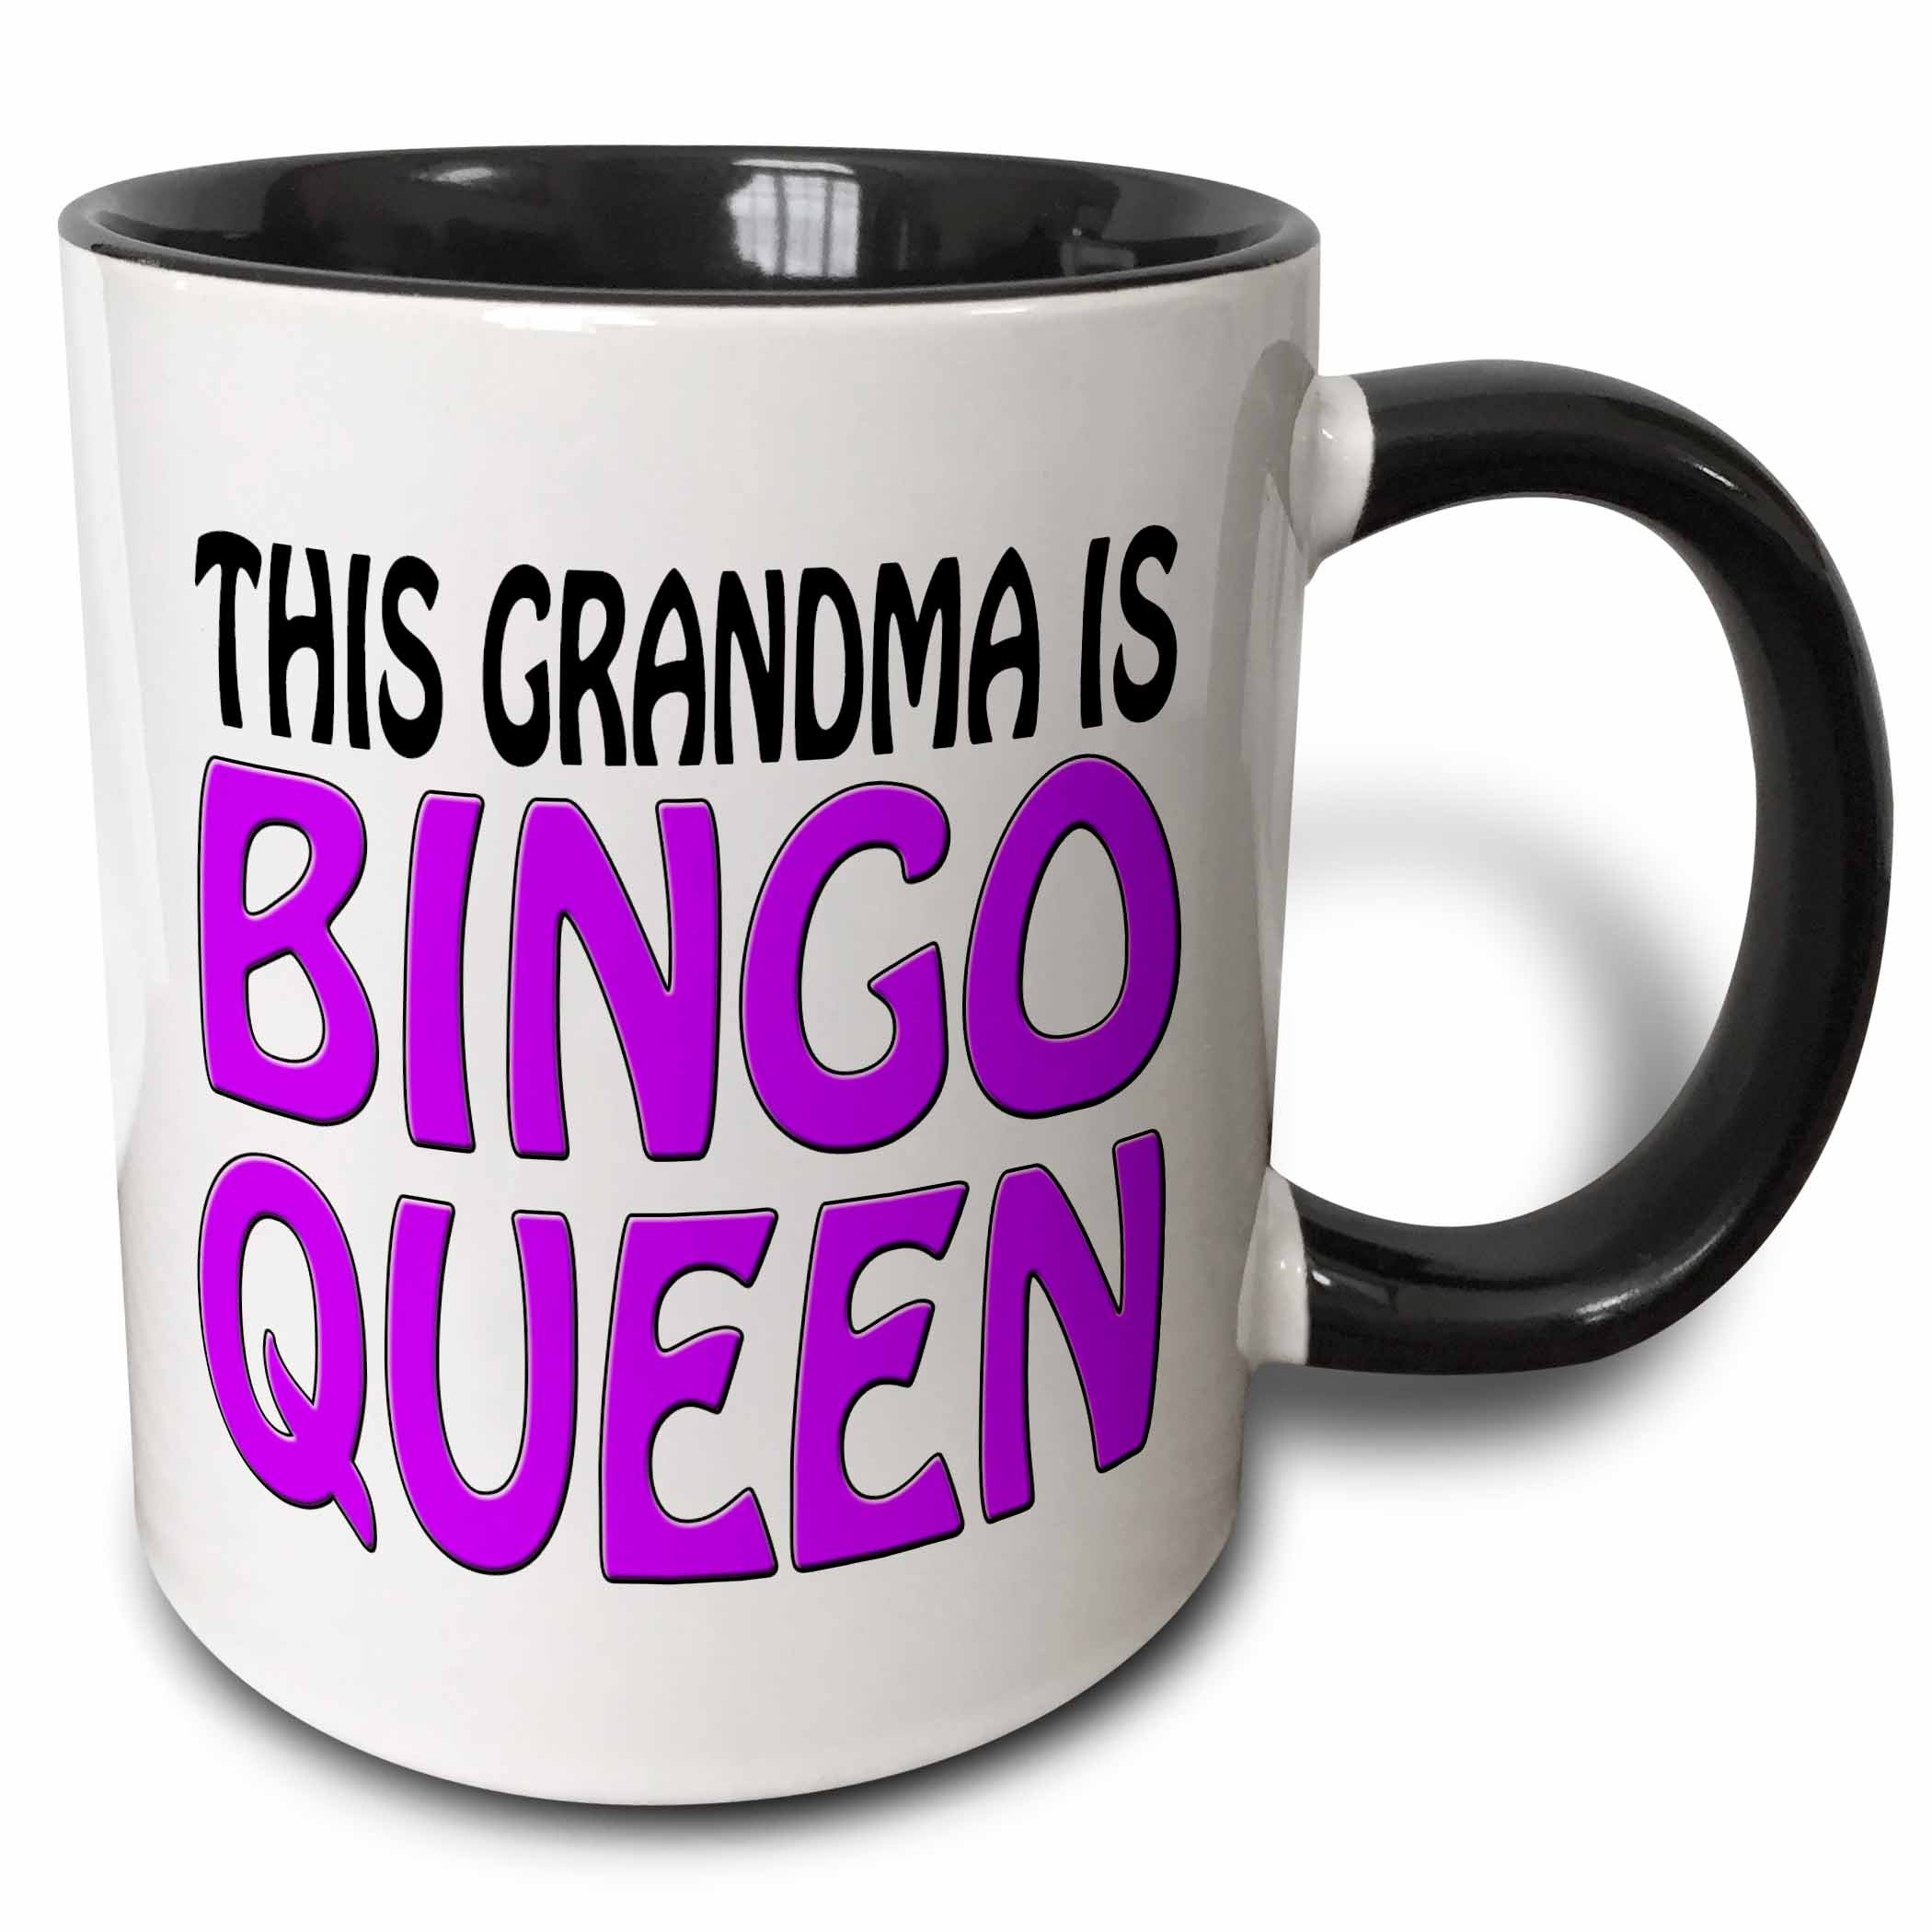 3dRose (mug_149773_4) This grandma is bingo queen, Purple, - Two Tone Black Mug, 11oz